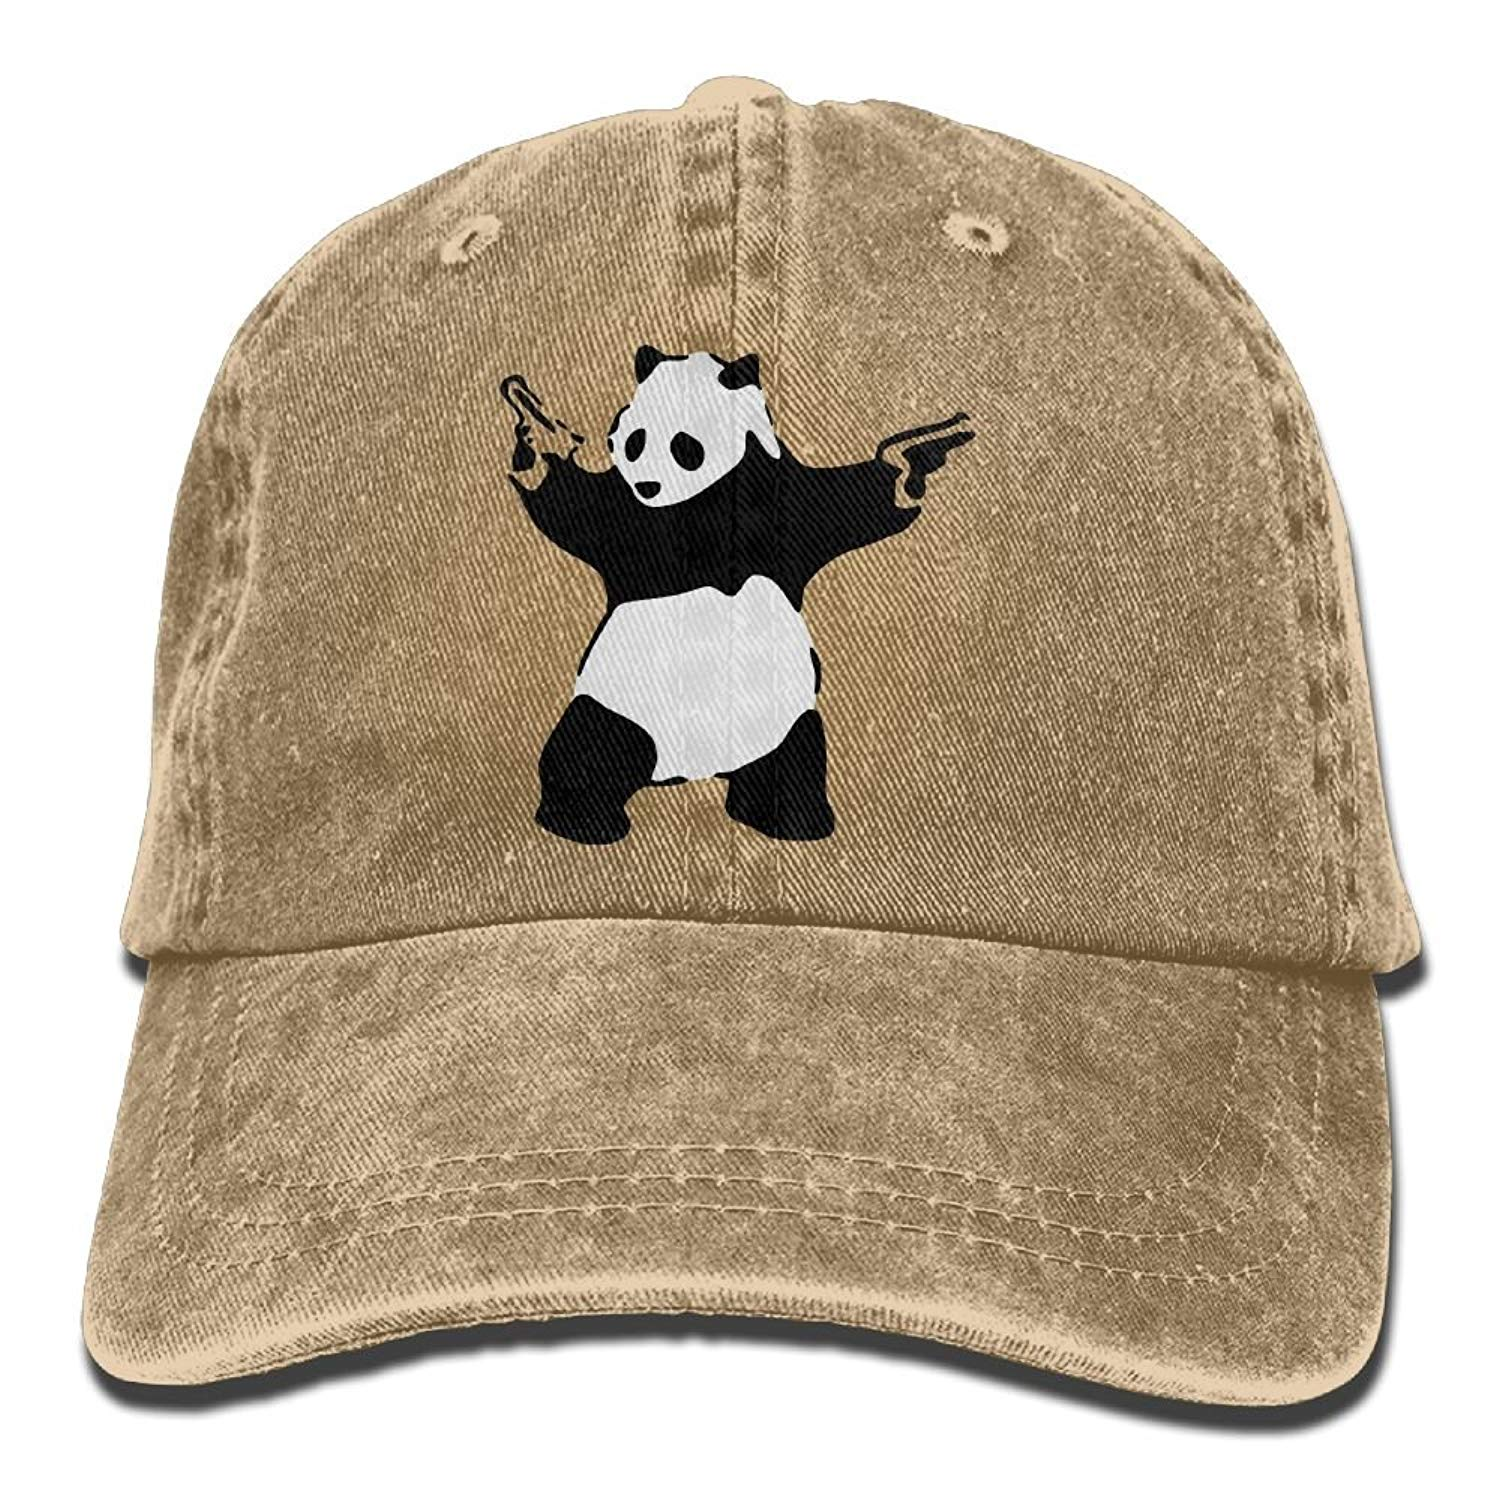 SDQQ6 KCCO - Panda Guns Banksy Adult Cowboy Hat Baseball Cap Adjustable Athletic Making Unique Hat for Men and Women